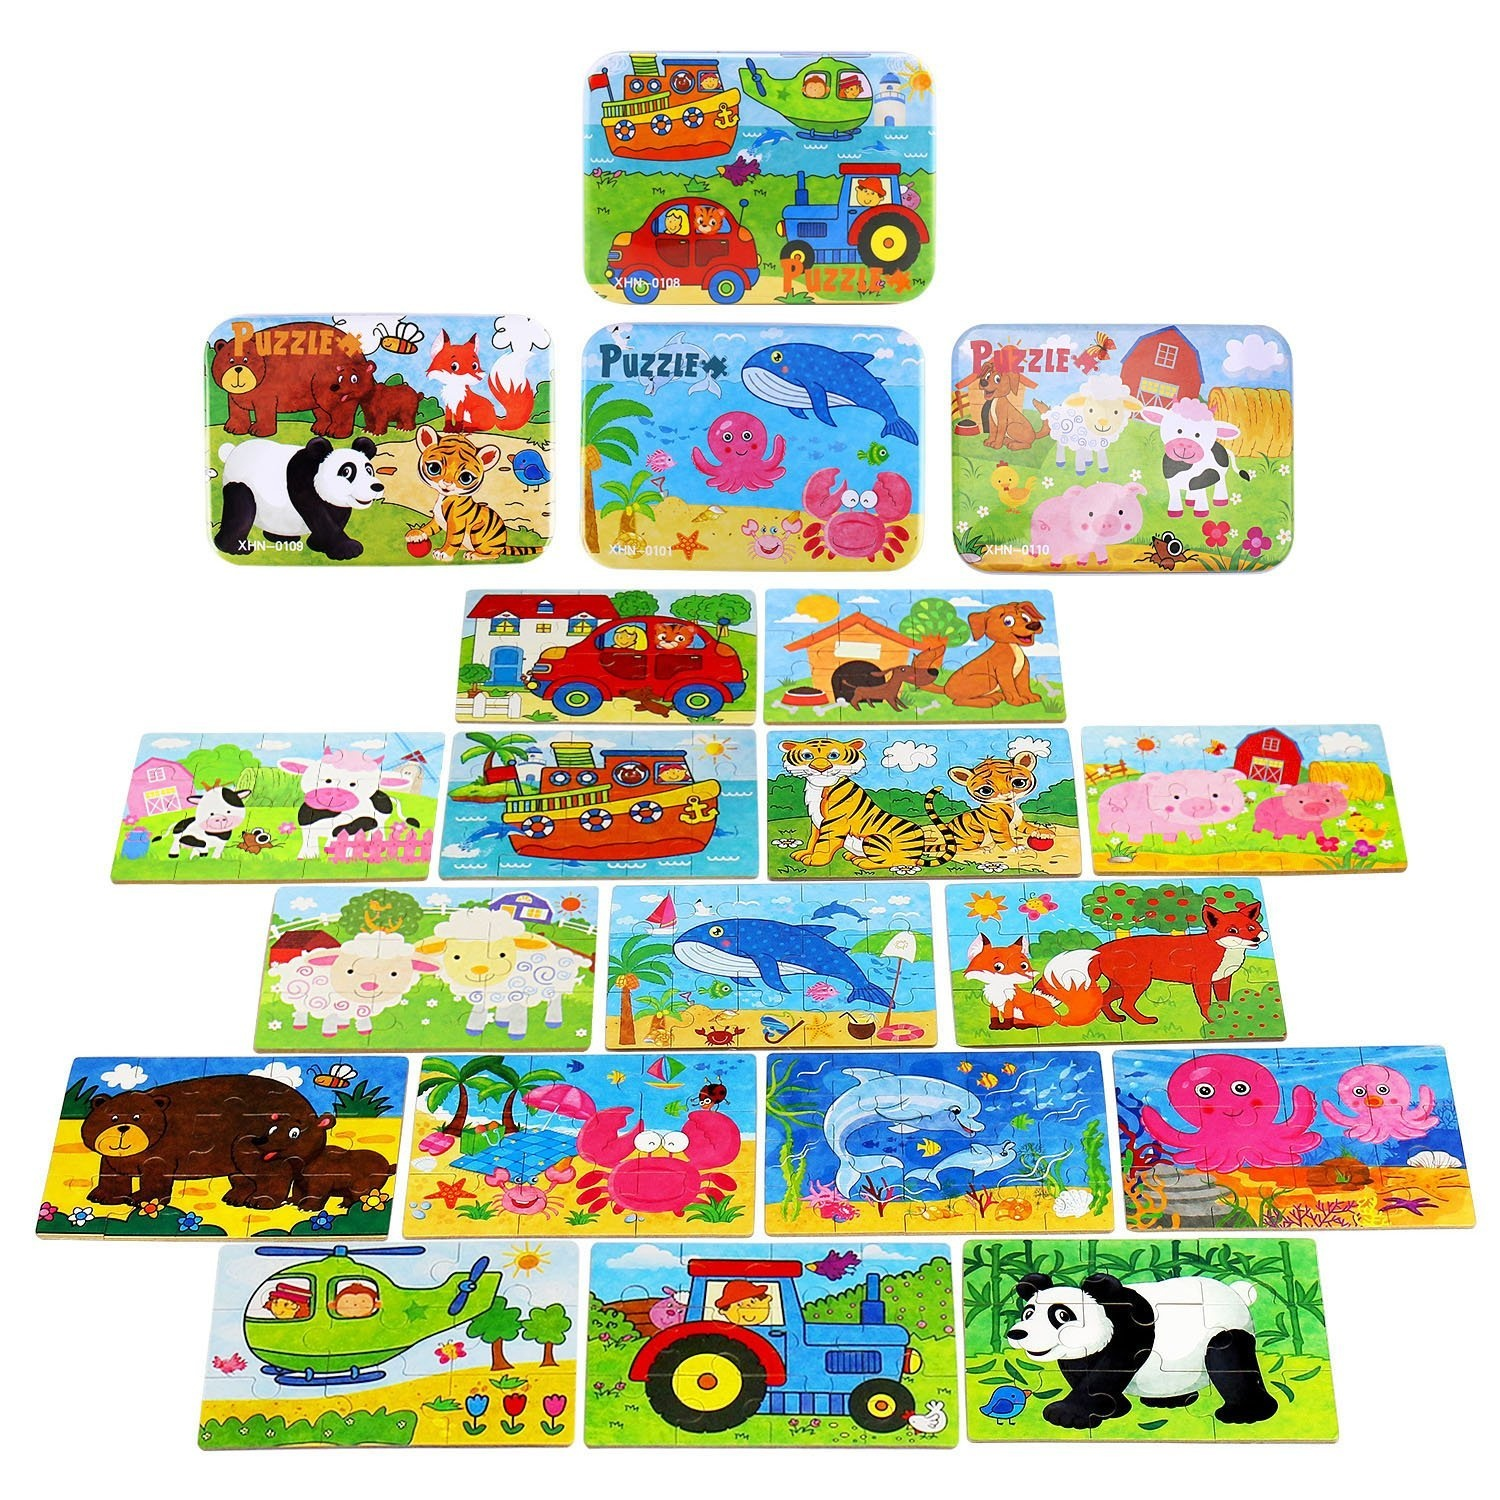 Wooden Jigsaw Puzzles Toy for Kids ,BBLIKE 224pcs Puzzles in 4 Tin Boxes  ,Varying Degree of Difficulty Educational Tool Best Birthday Present for  Boys